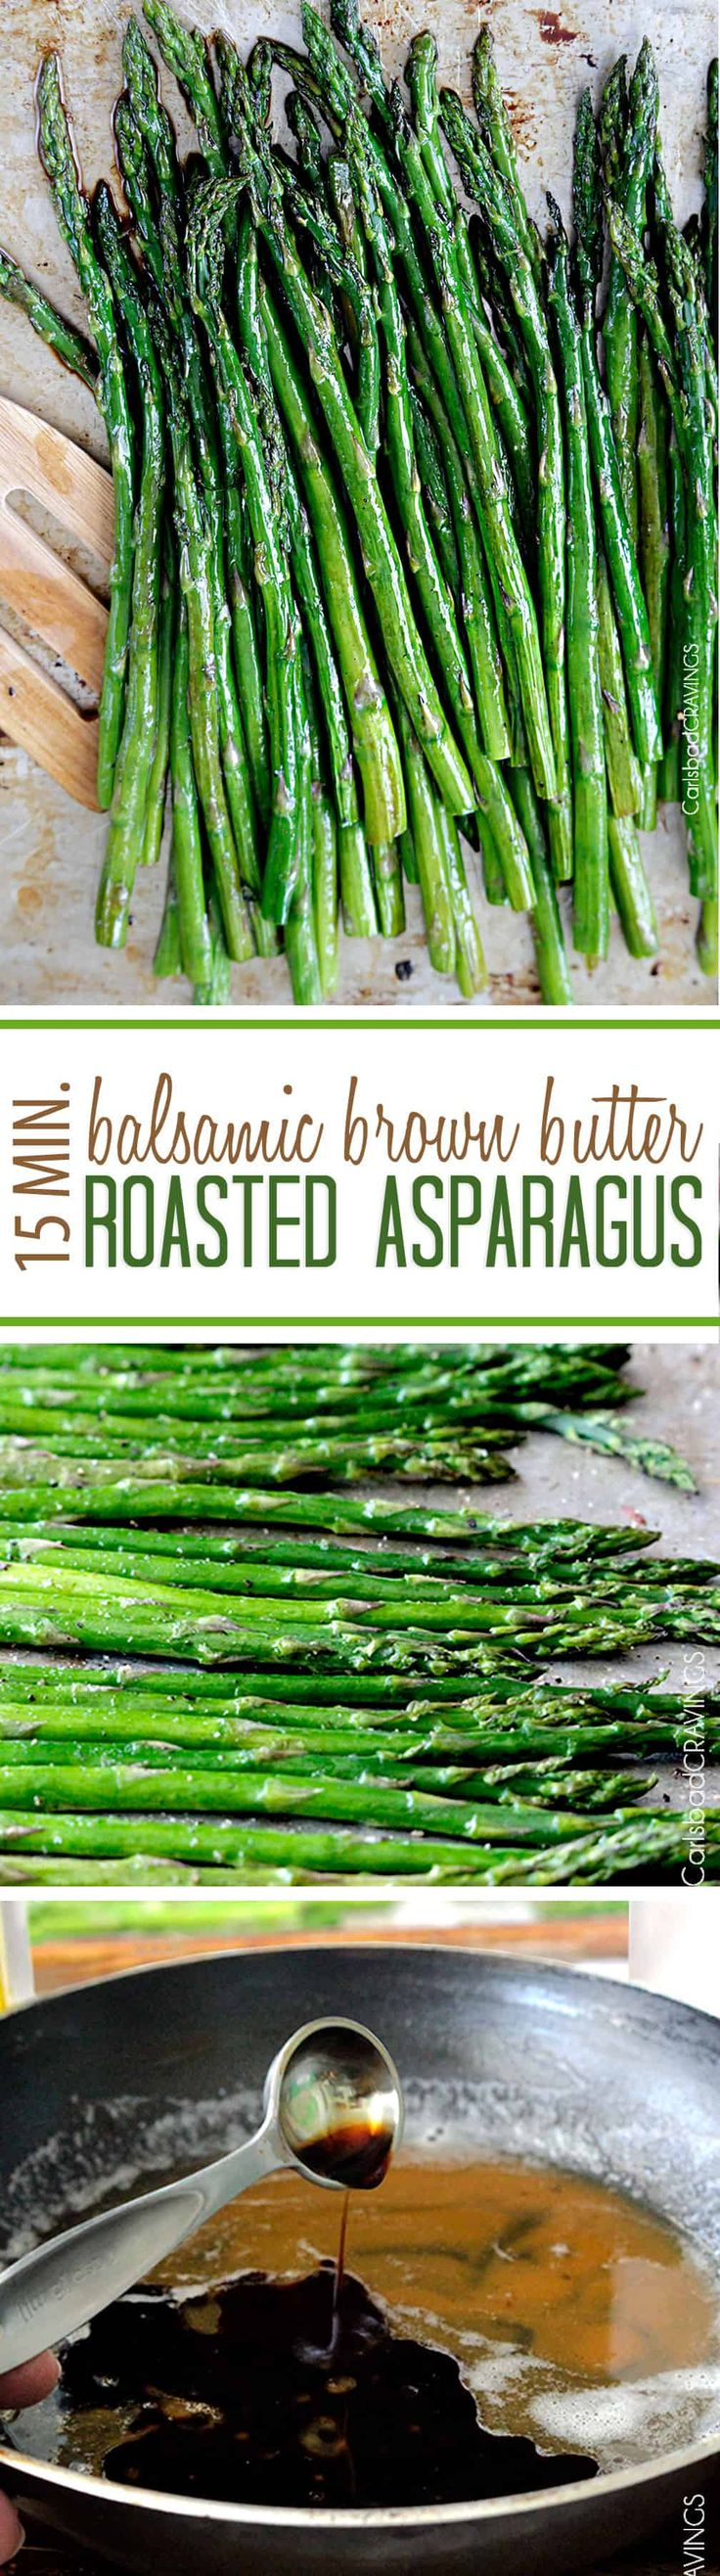 """Roasted Asparagus with Balsamic Brown Butter will BLOW YOUR MIND! - and it's on your table in 15 minutes! This Roasted Asparagus Recipe is hands down the BEST way to eatbest way to eat asparagus! It's a back pocket """"ace"""" when you need a restaurantworthy side. via @carlsbadcraving"""